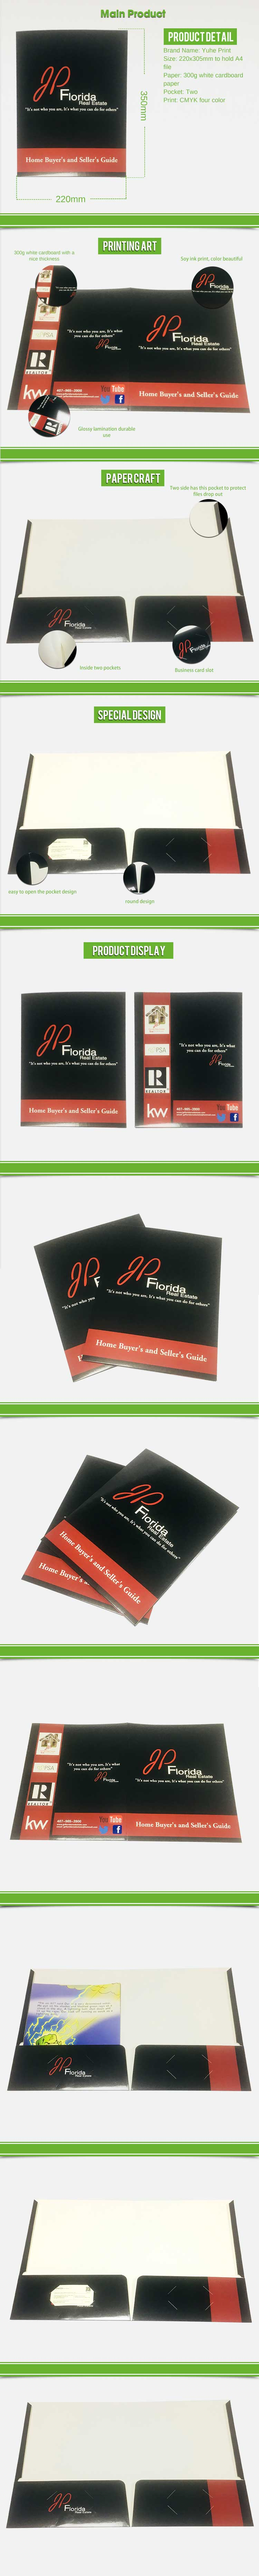 Custom collecting paperboard album folder with logo diecut holes and gloss lamination